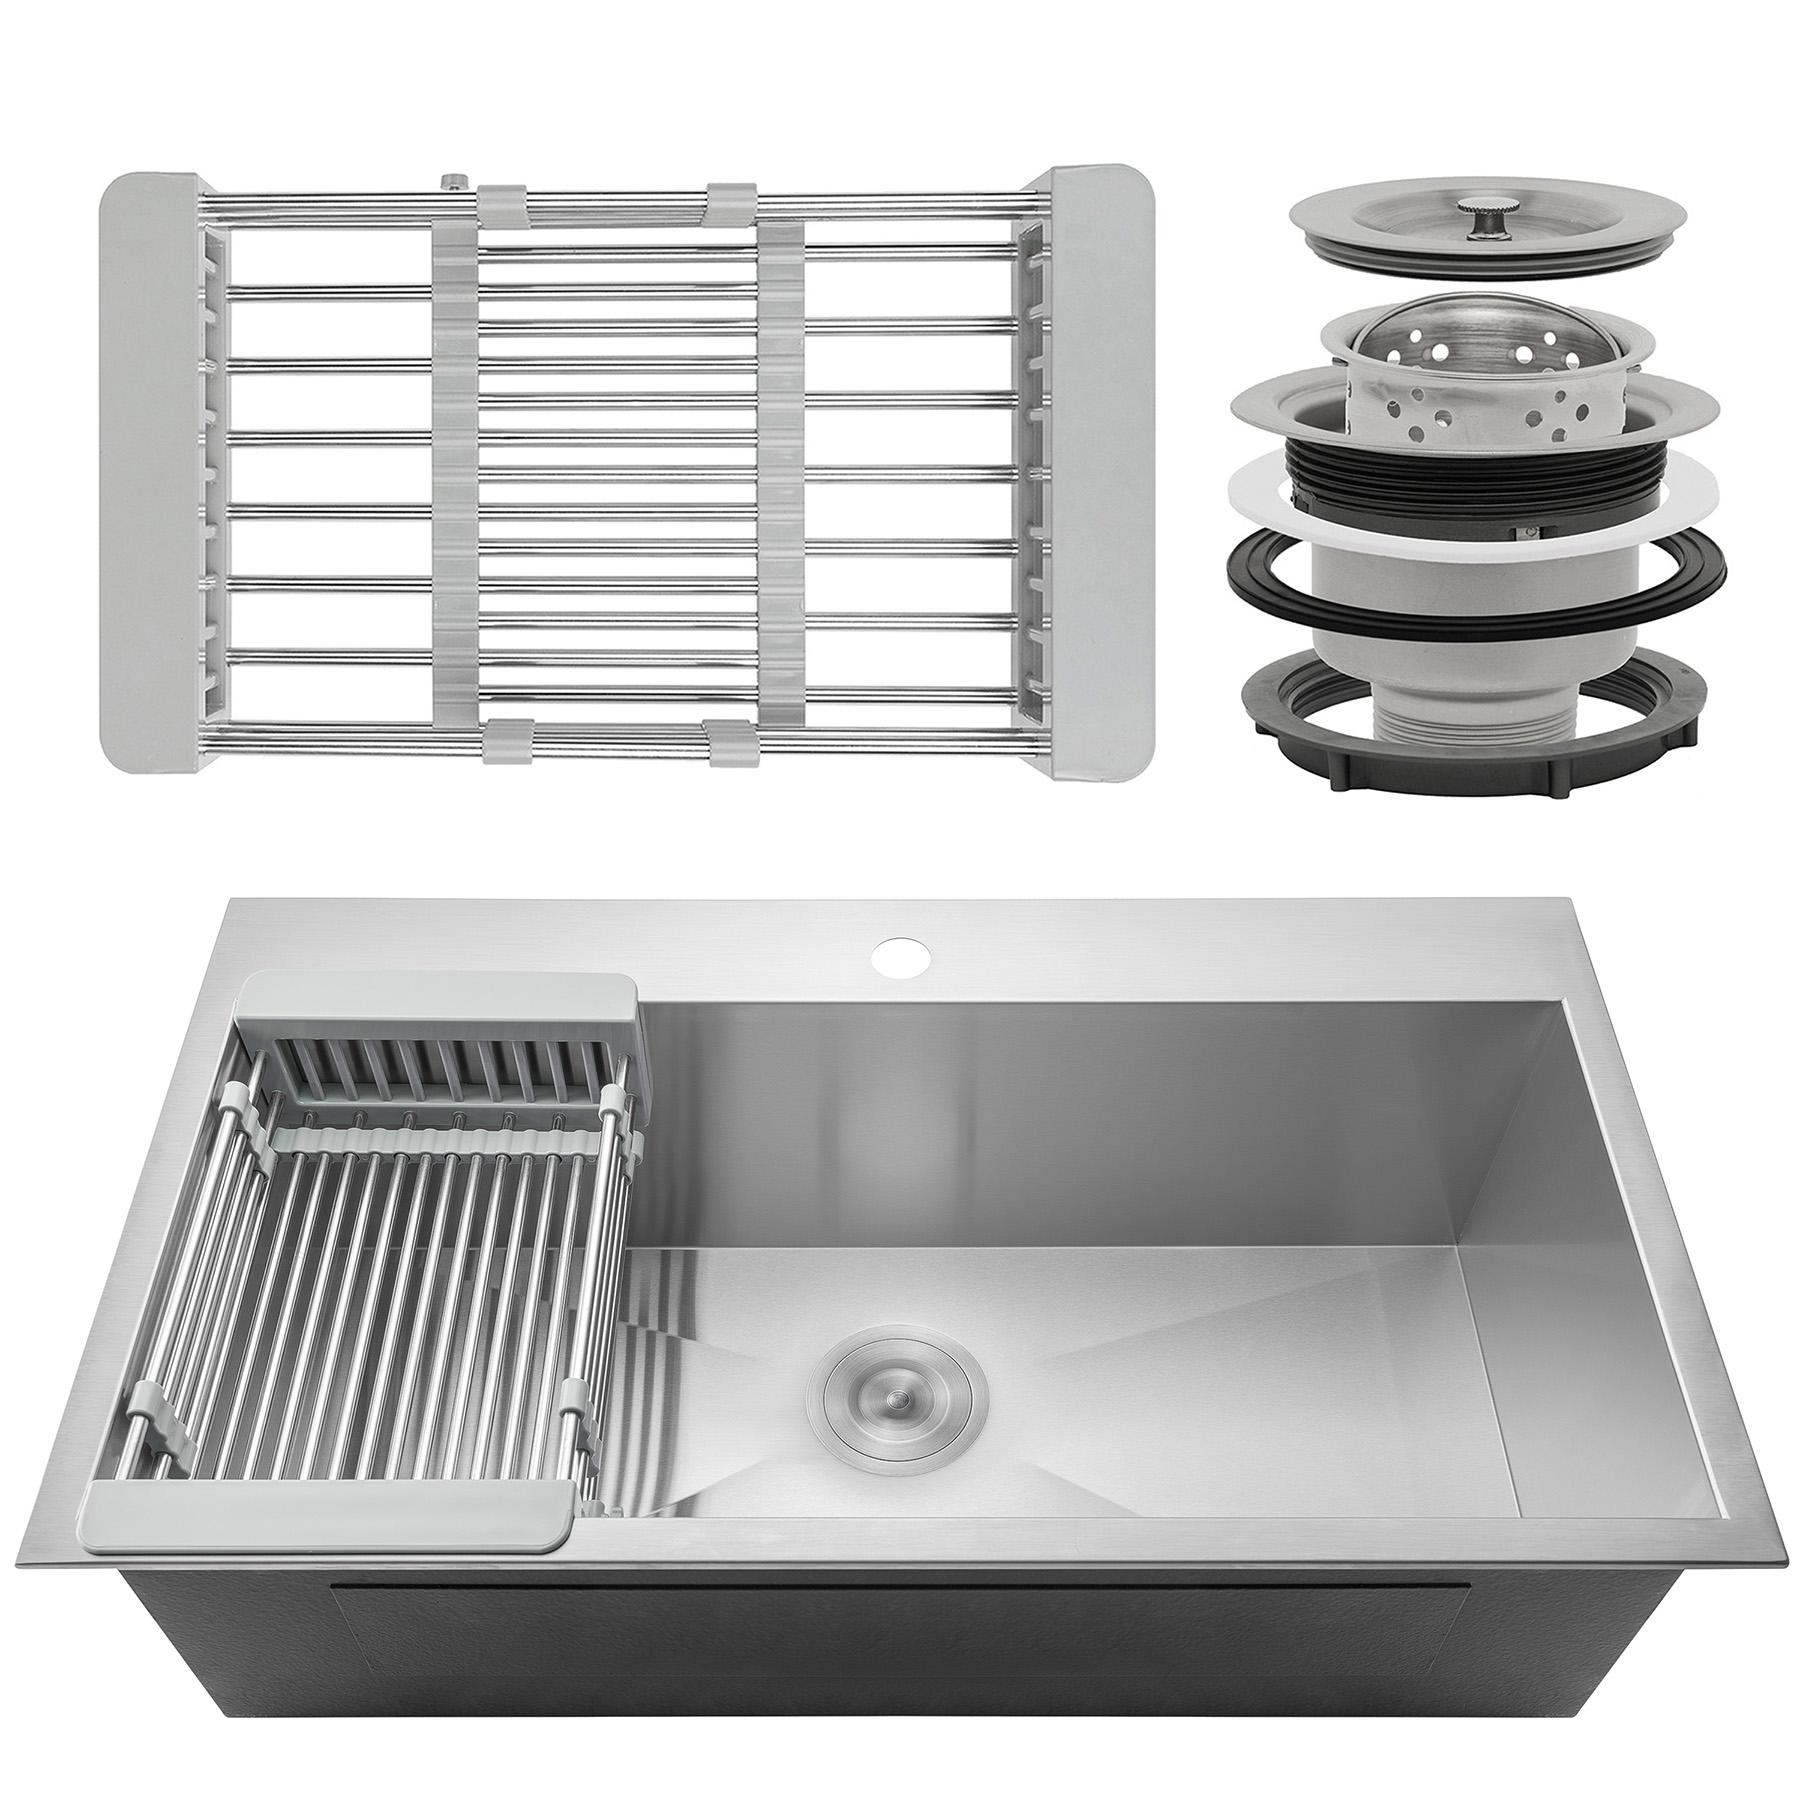 "AKDY 30"" x 18"" x 9"" Handmade Stainless Steel Top Mount Kitchen Sink Single Basin Tray Strainer Kit"